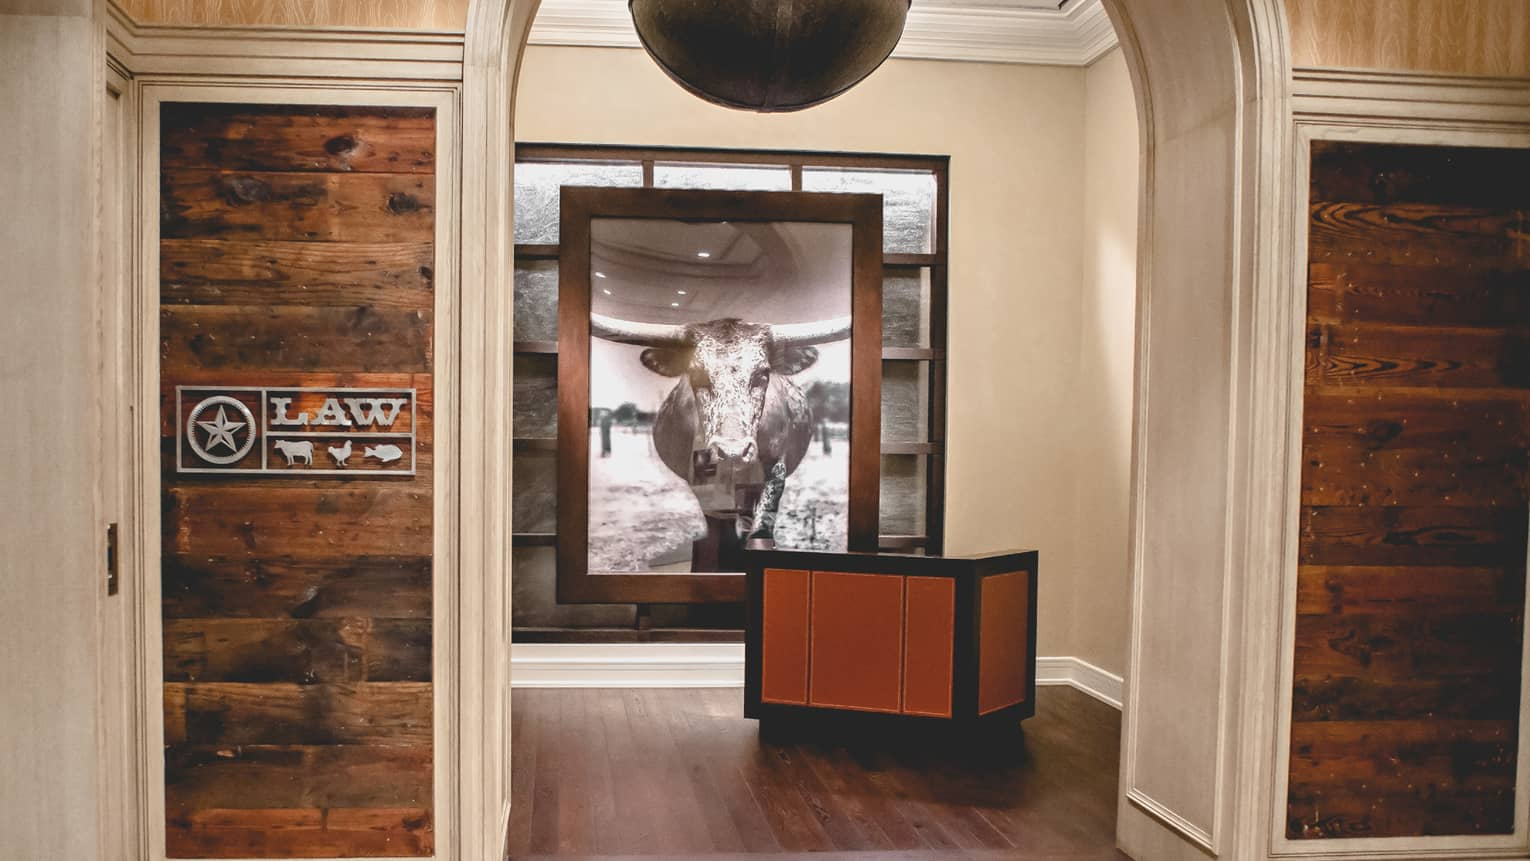 Law restaurant sign, rustic wood reception desk in front of large black-and-white photo of bull